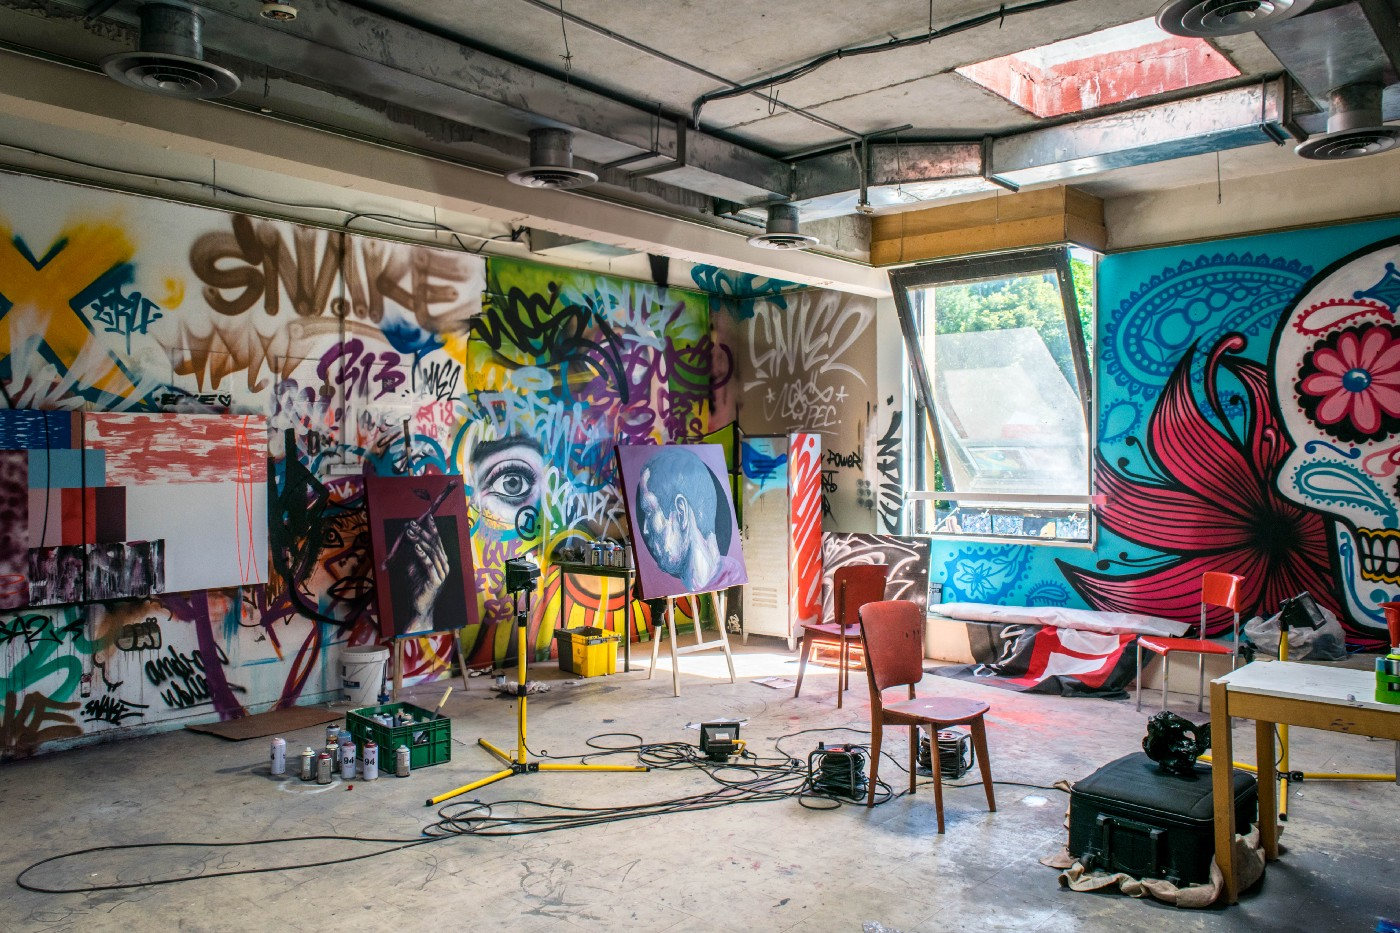 Somewhat messy painting studio with canvases, and painting on the wall like graffiti.